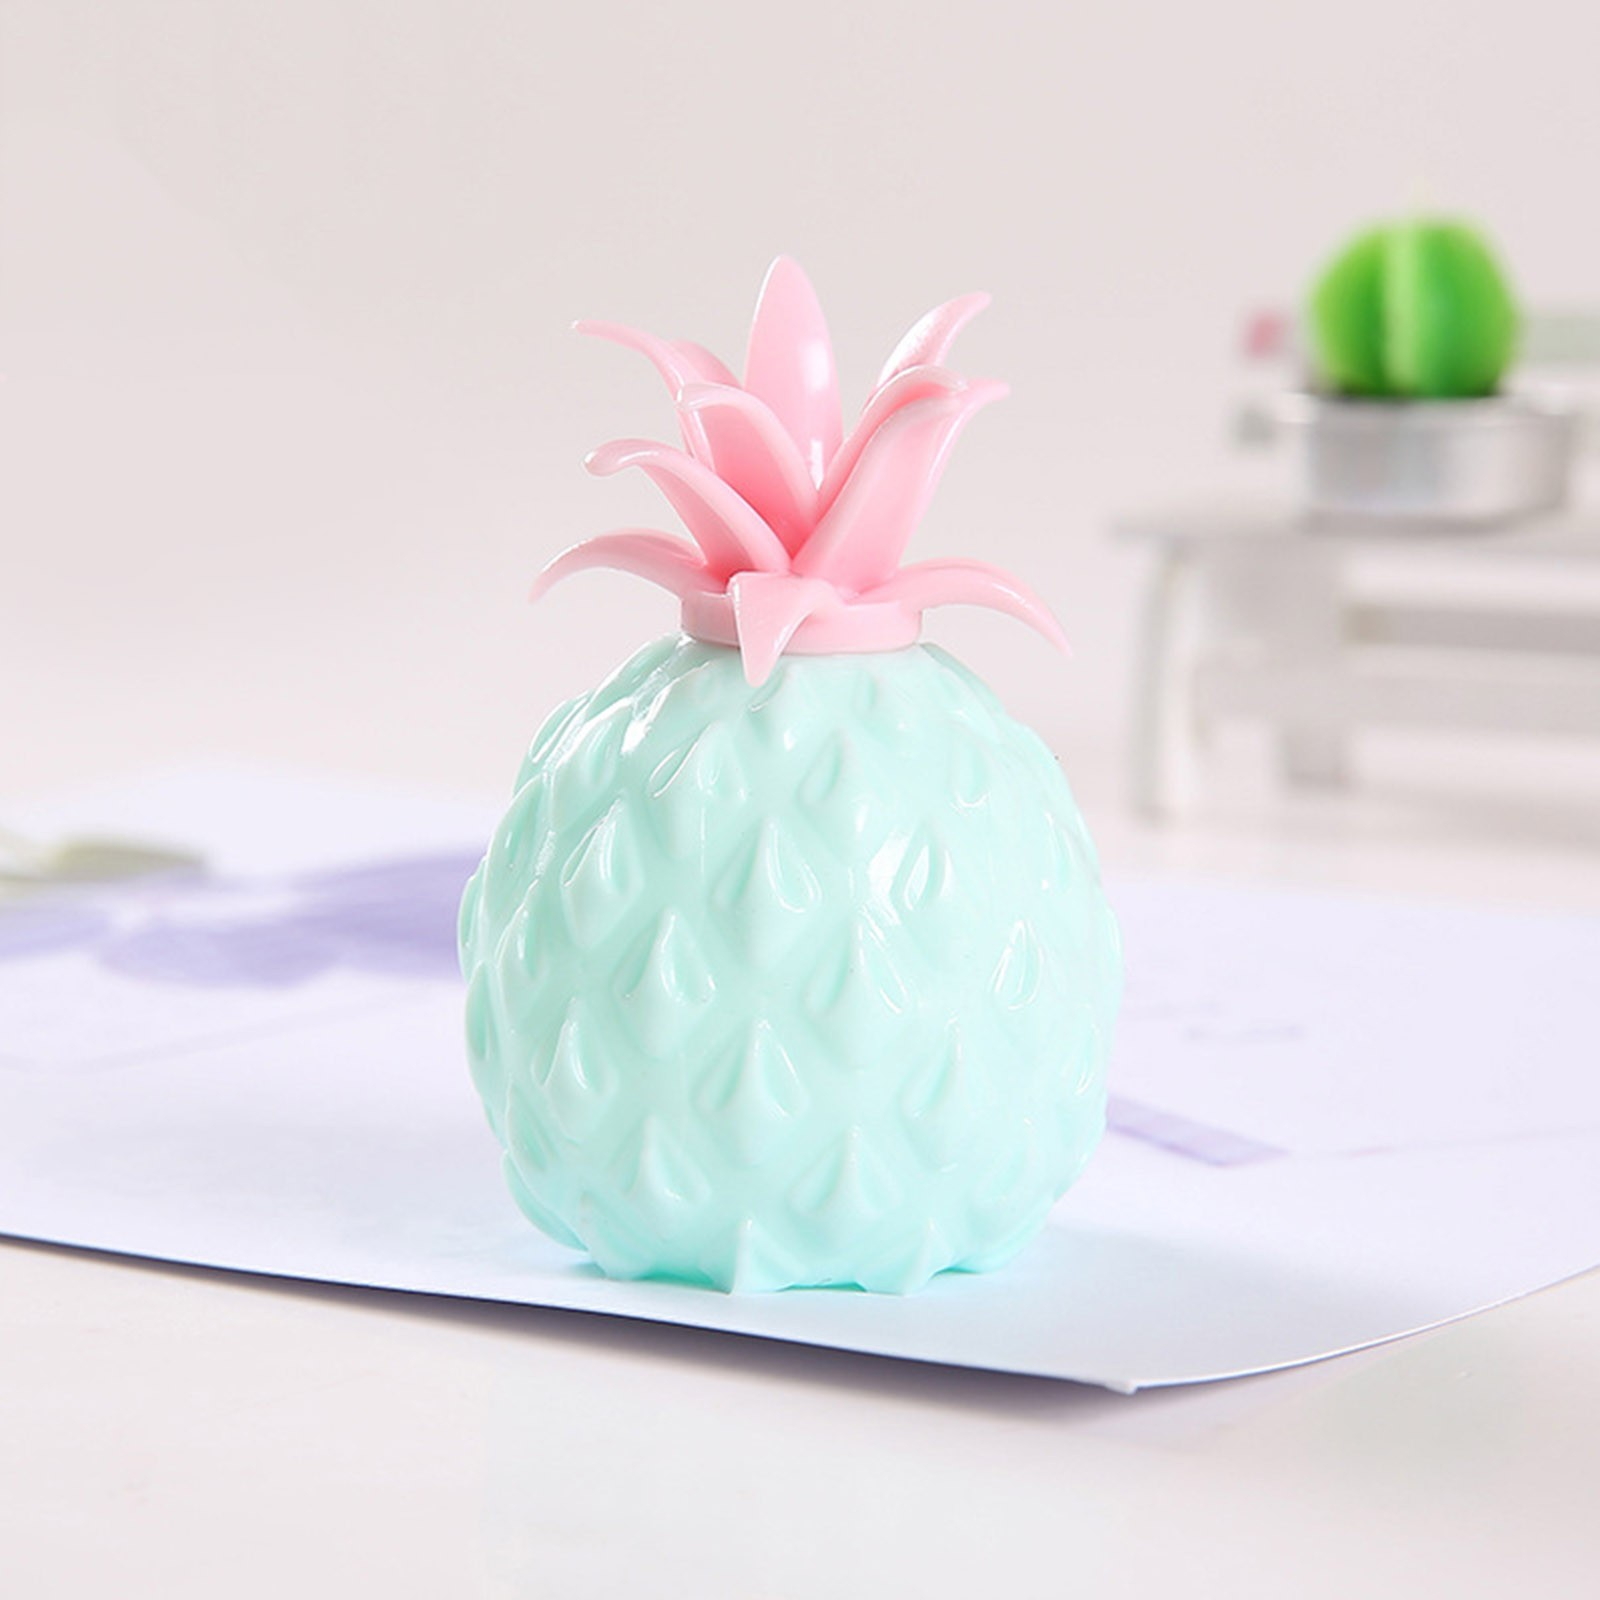 2021 Fidget Toys New Simulation Flour Pineapple Decompression Toy Office Pressure Release img2